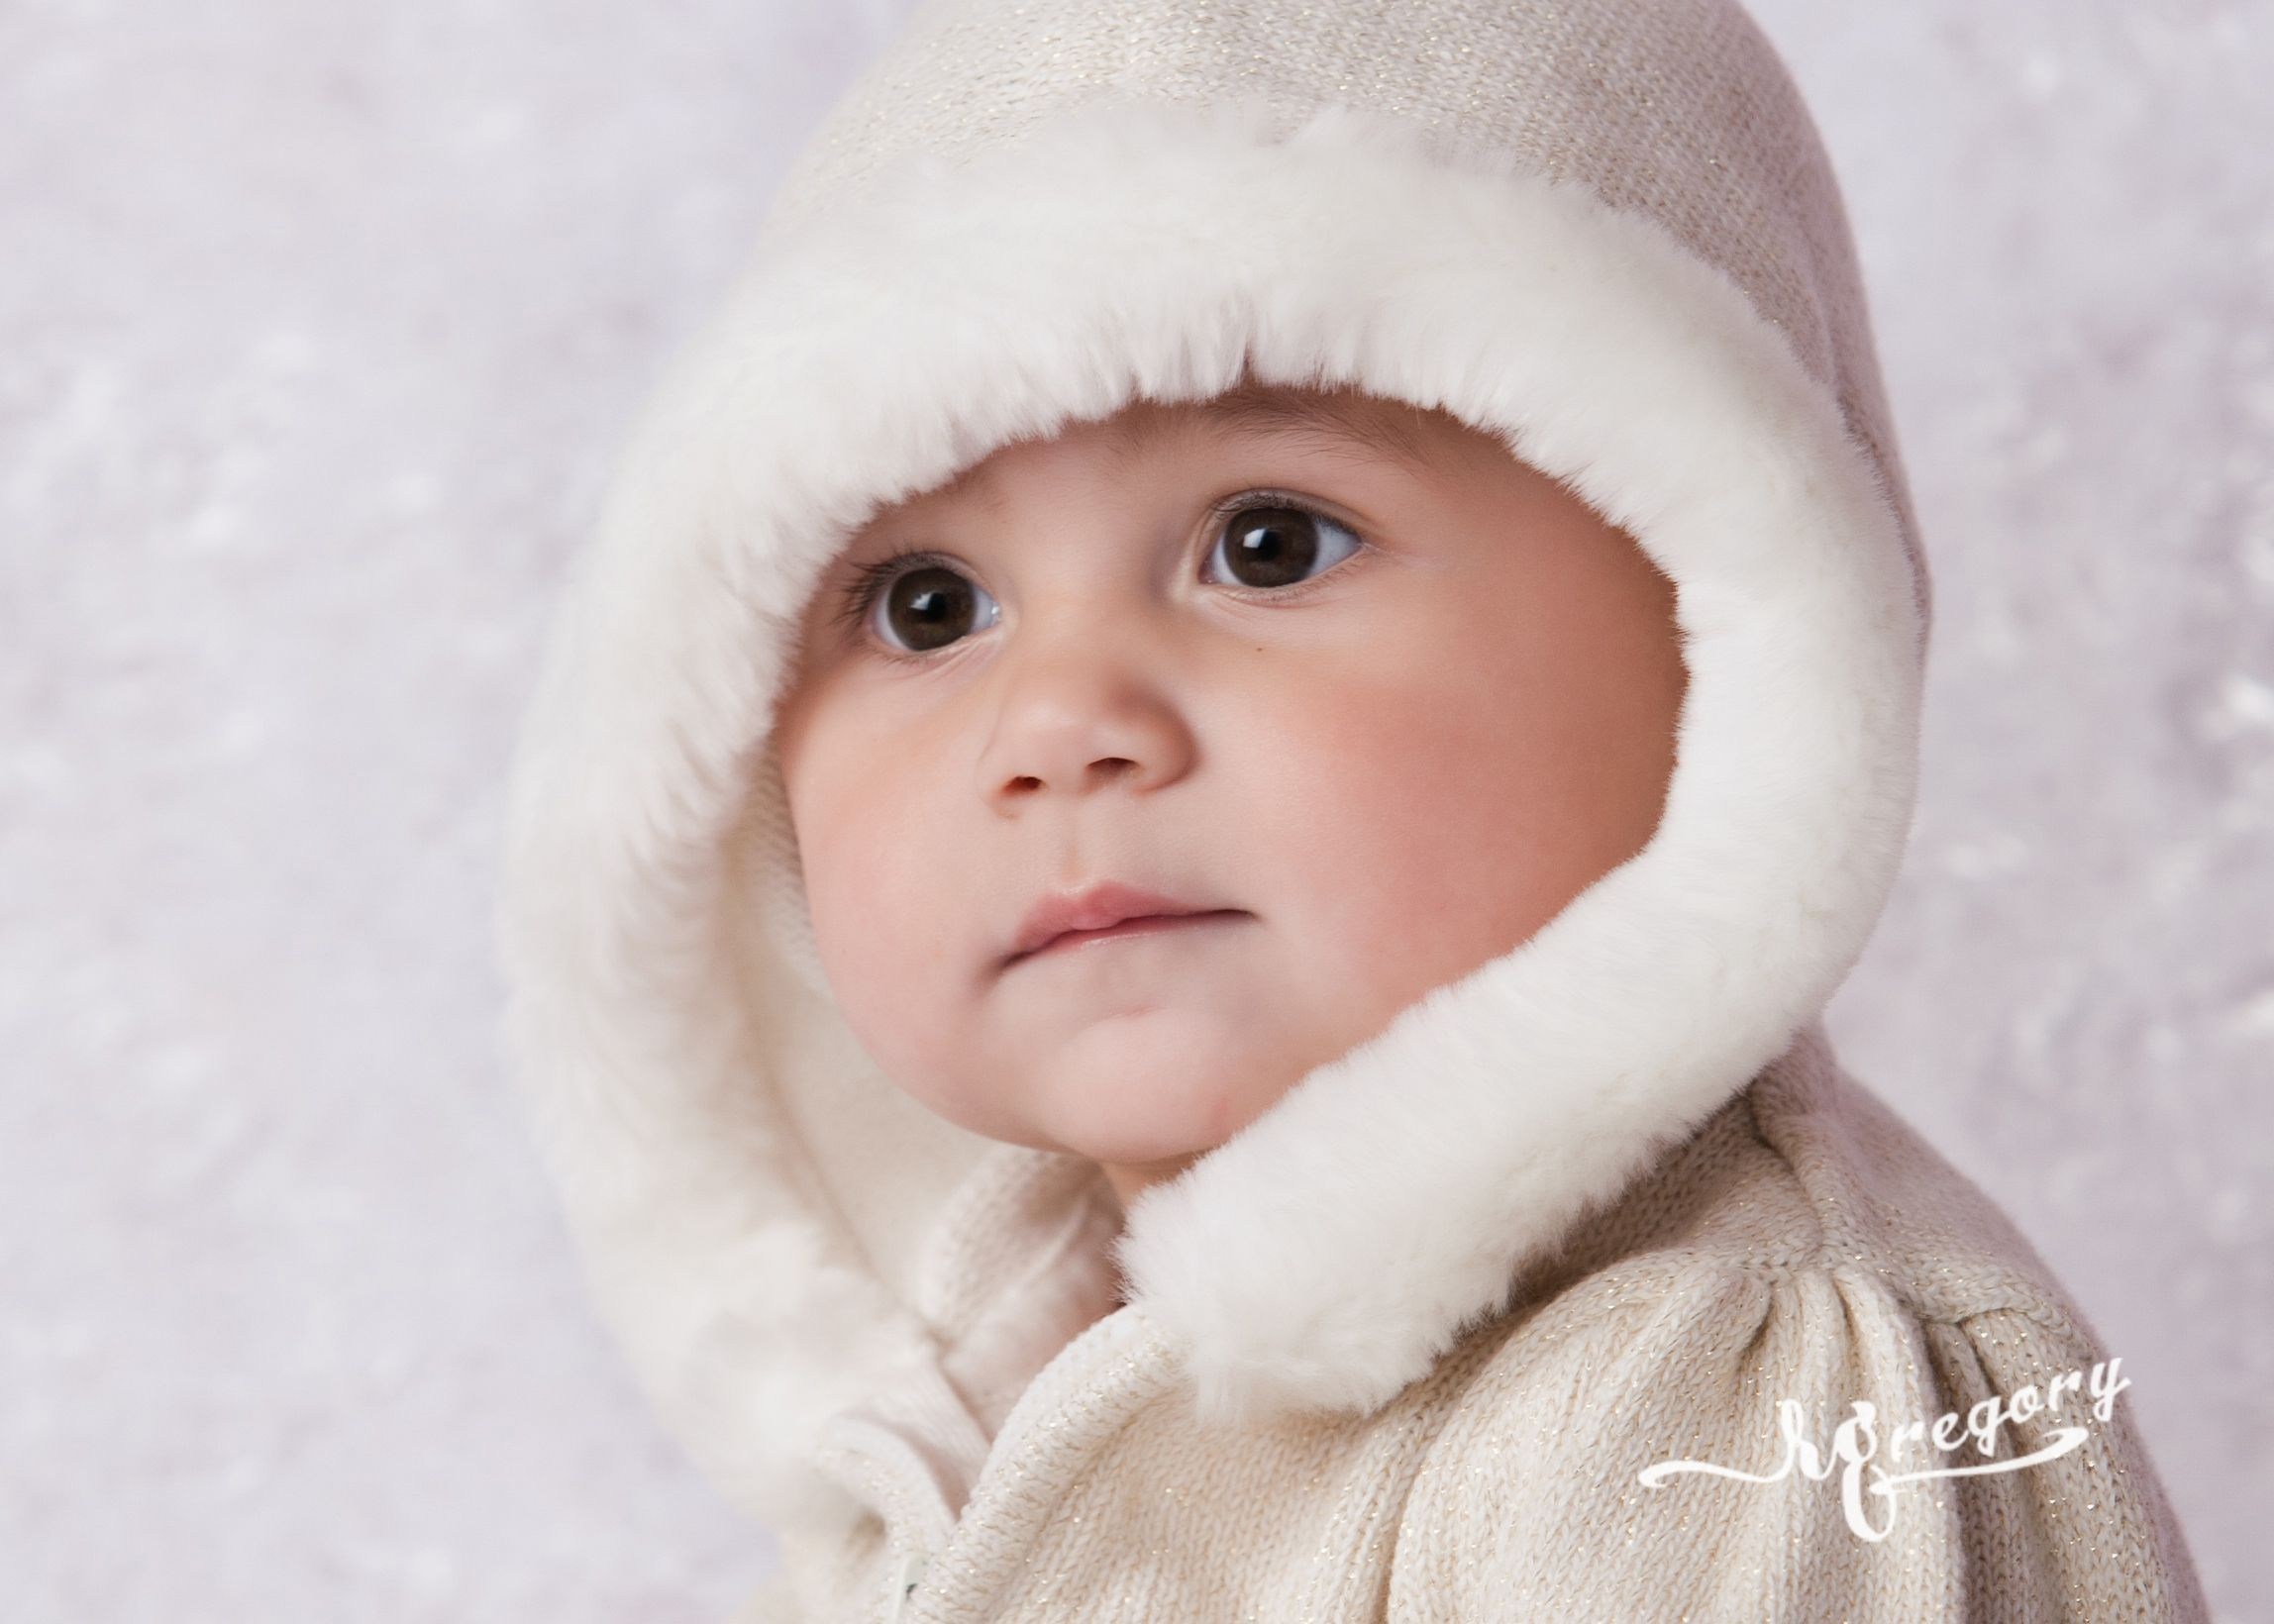 sweet baby face child photo in white fleeced hood